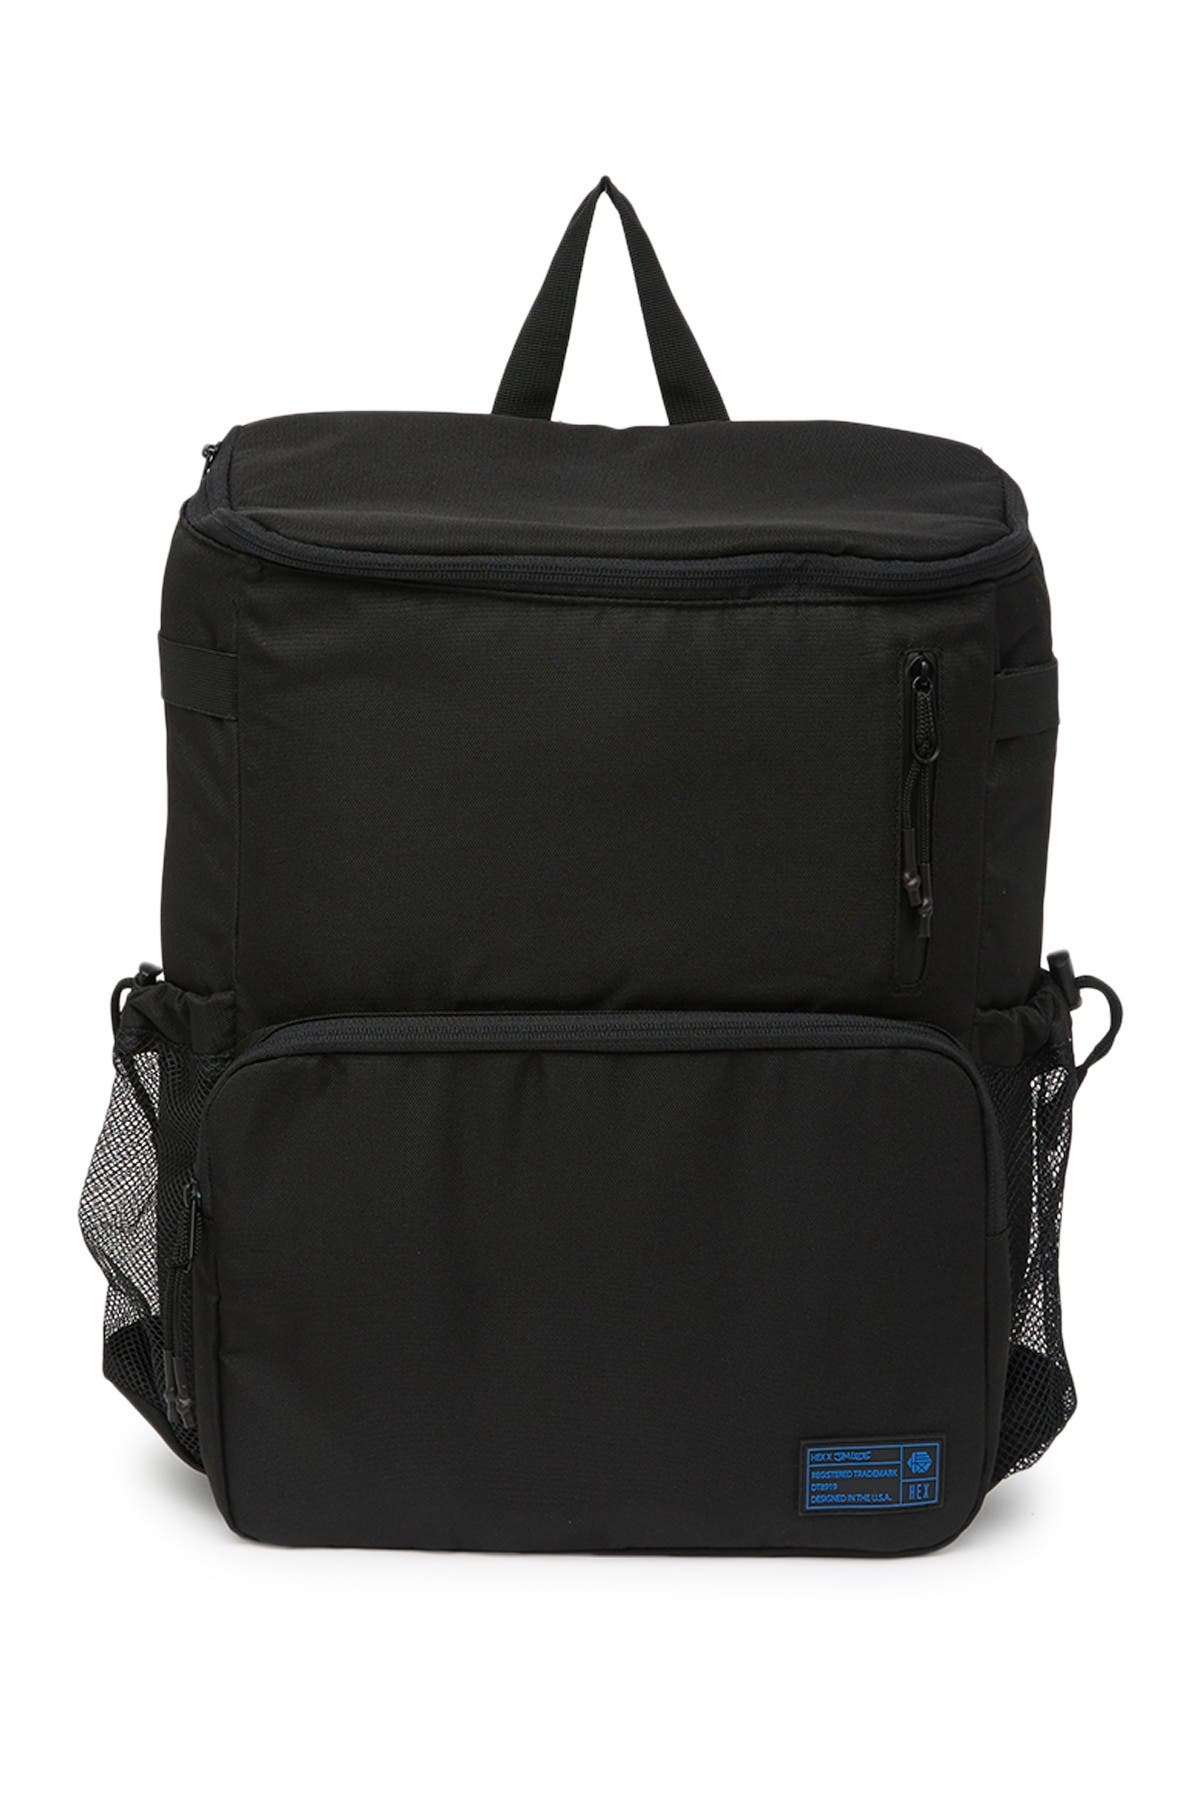 Image of Hex Accessories Jim Lee Comic Book Collection Backpack